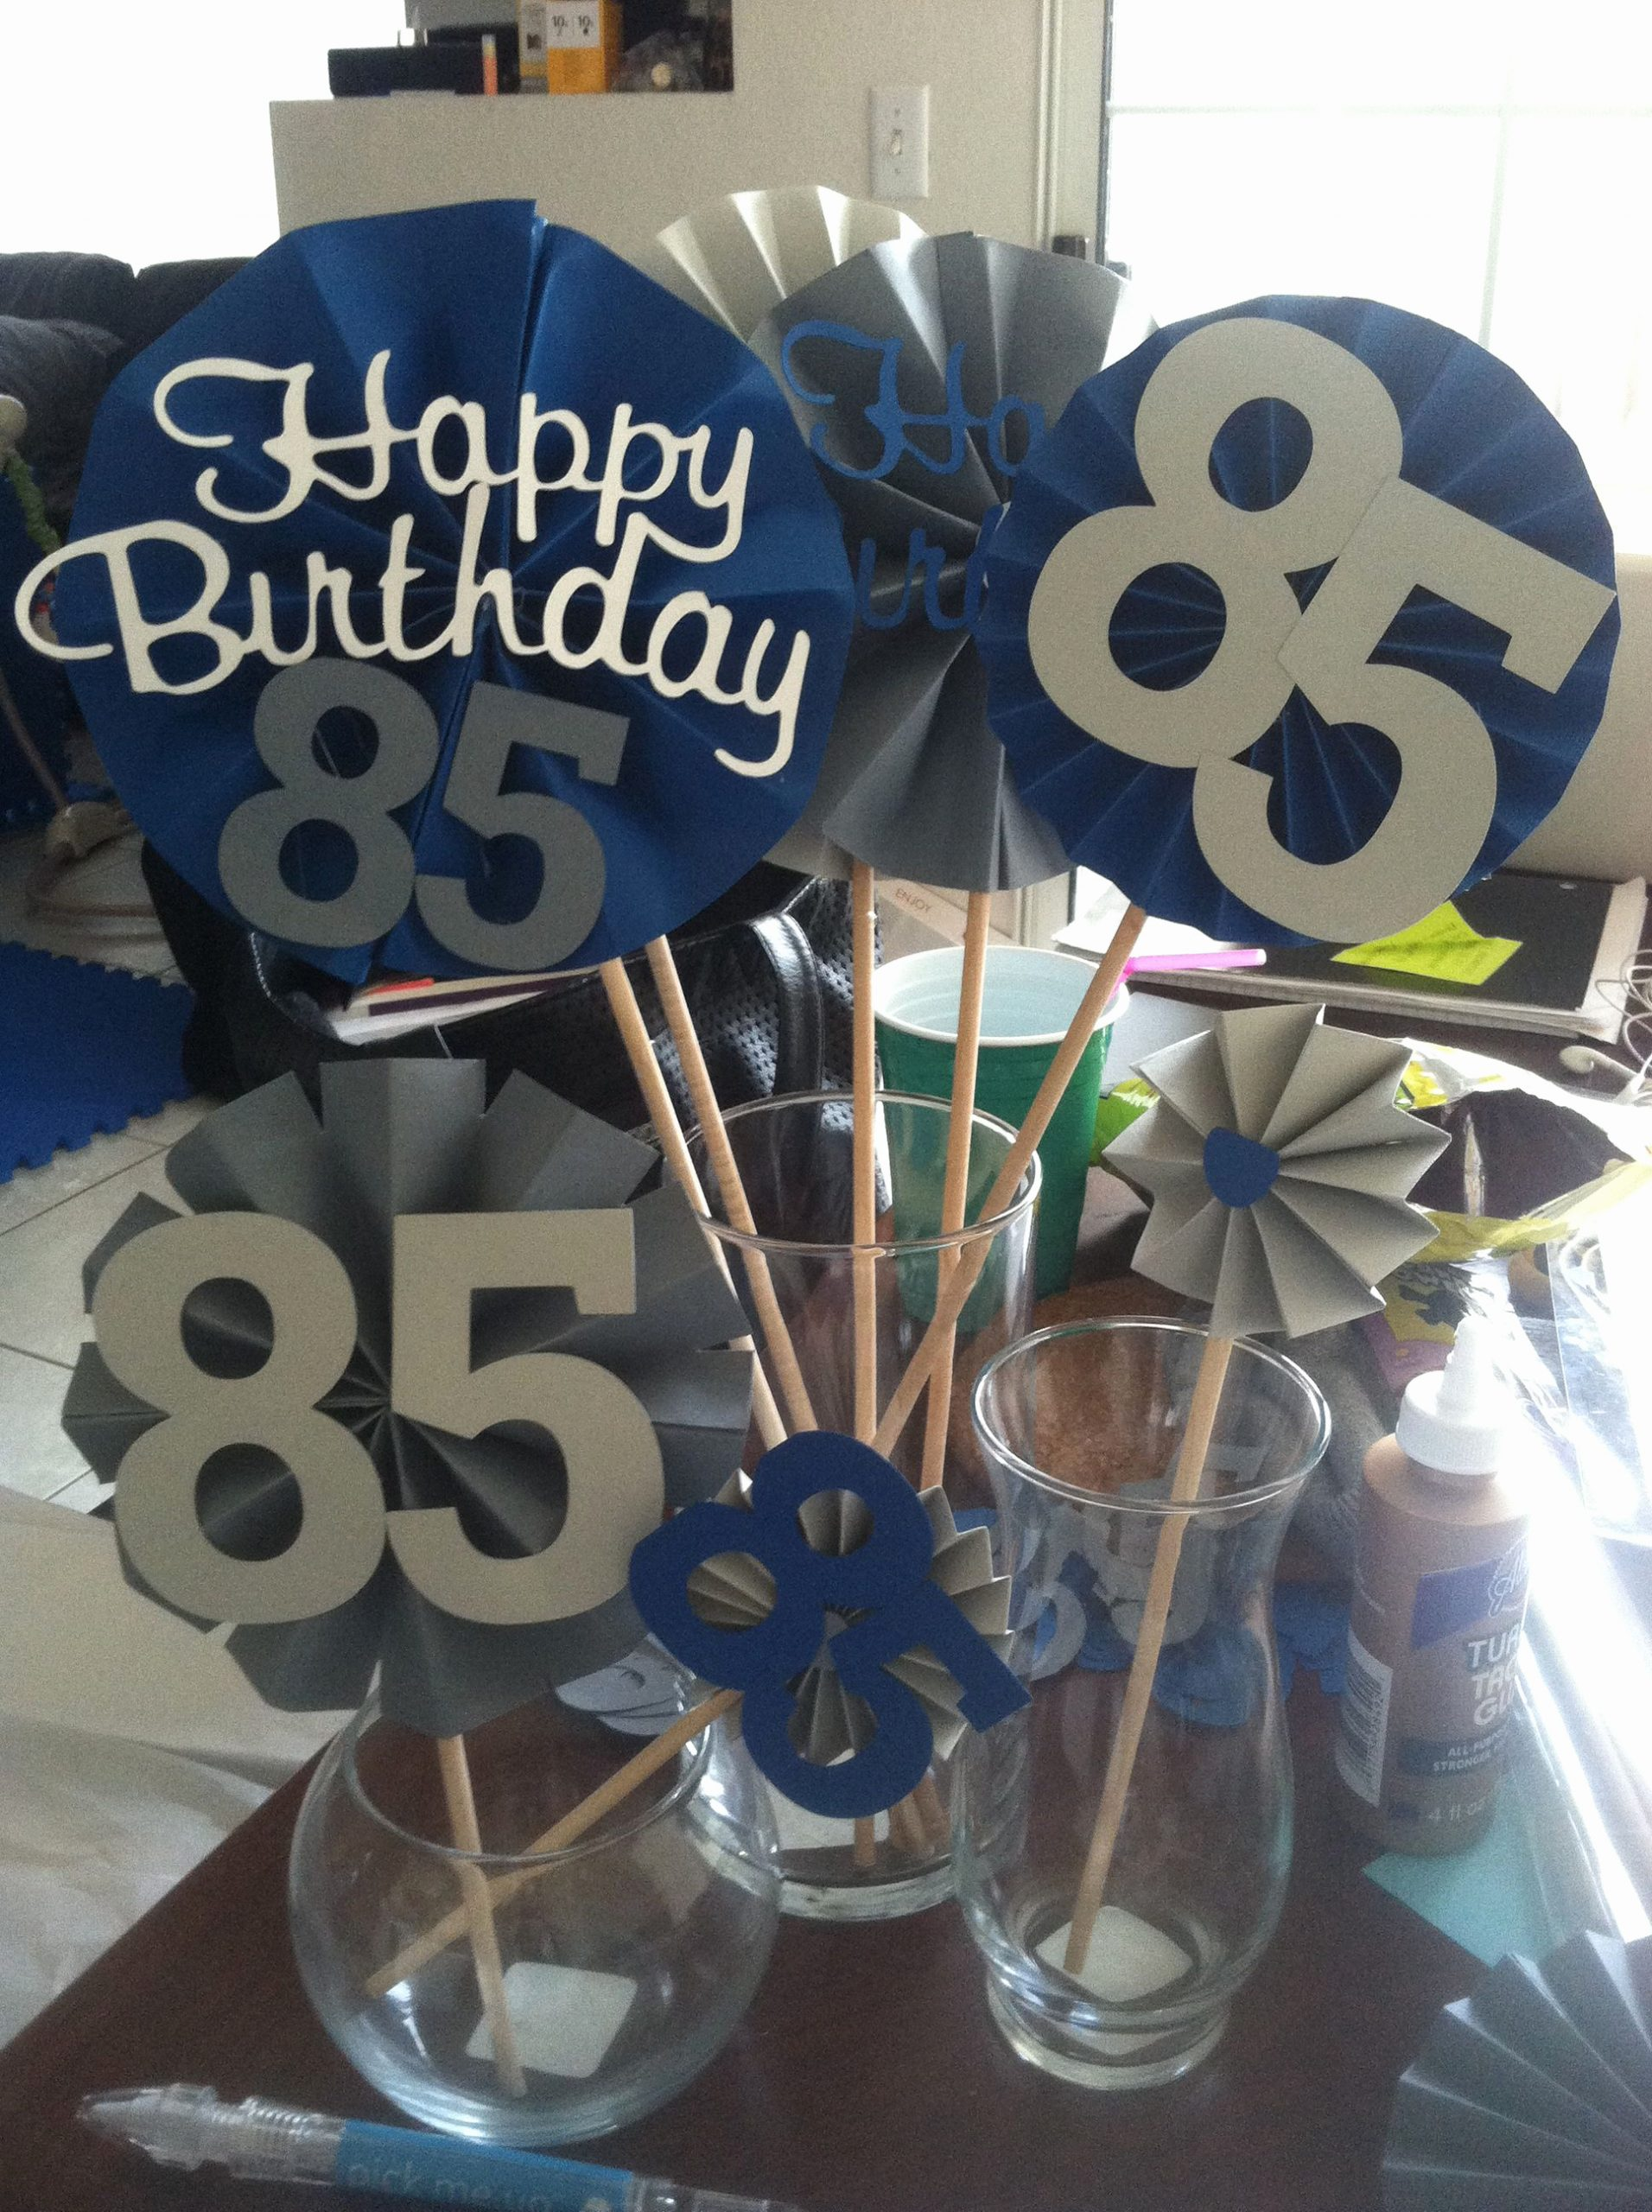 Birthday Decoration Ideas for Grandpa Unique Pin by Noelle Terrado On Easypeasybynoeeazy